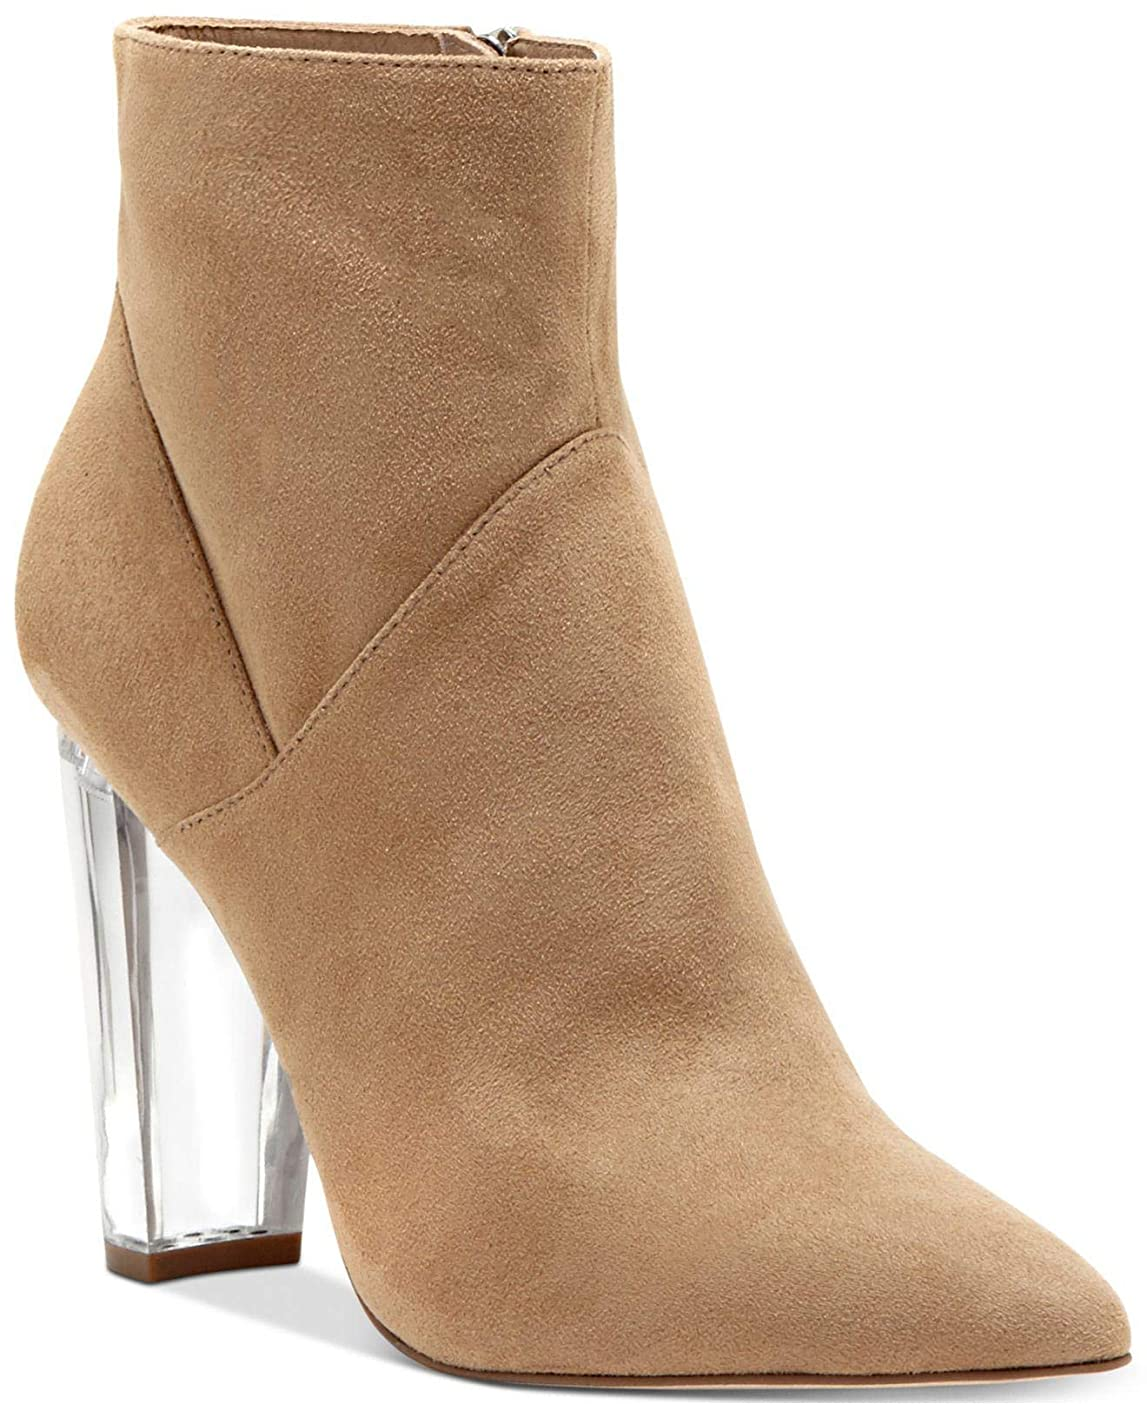 充実発表マンモス[Jessica Simpson] Womens Tarek Fabric Almond Toe Ankle Fashion Boots [並行輸入品]